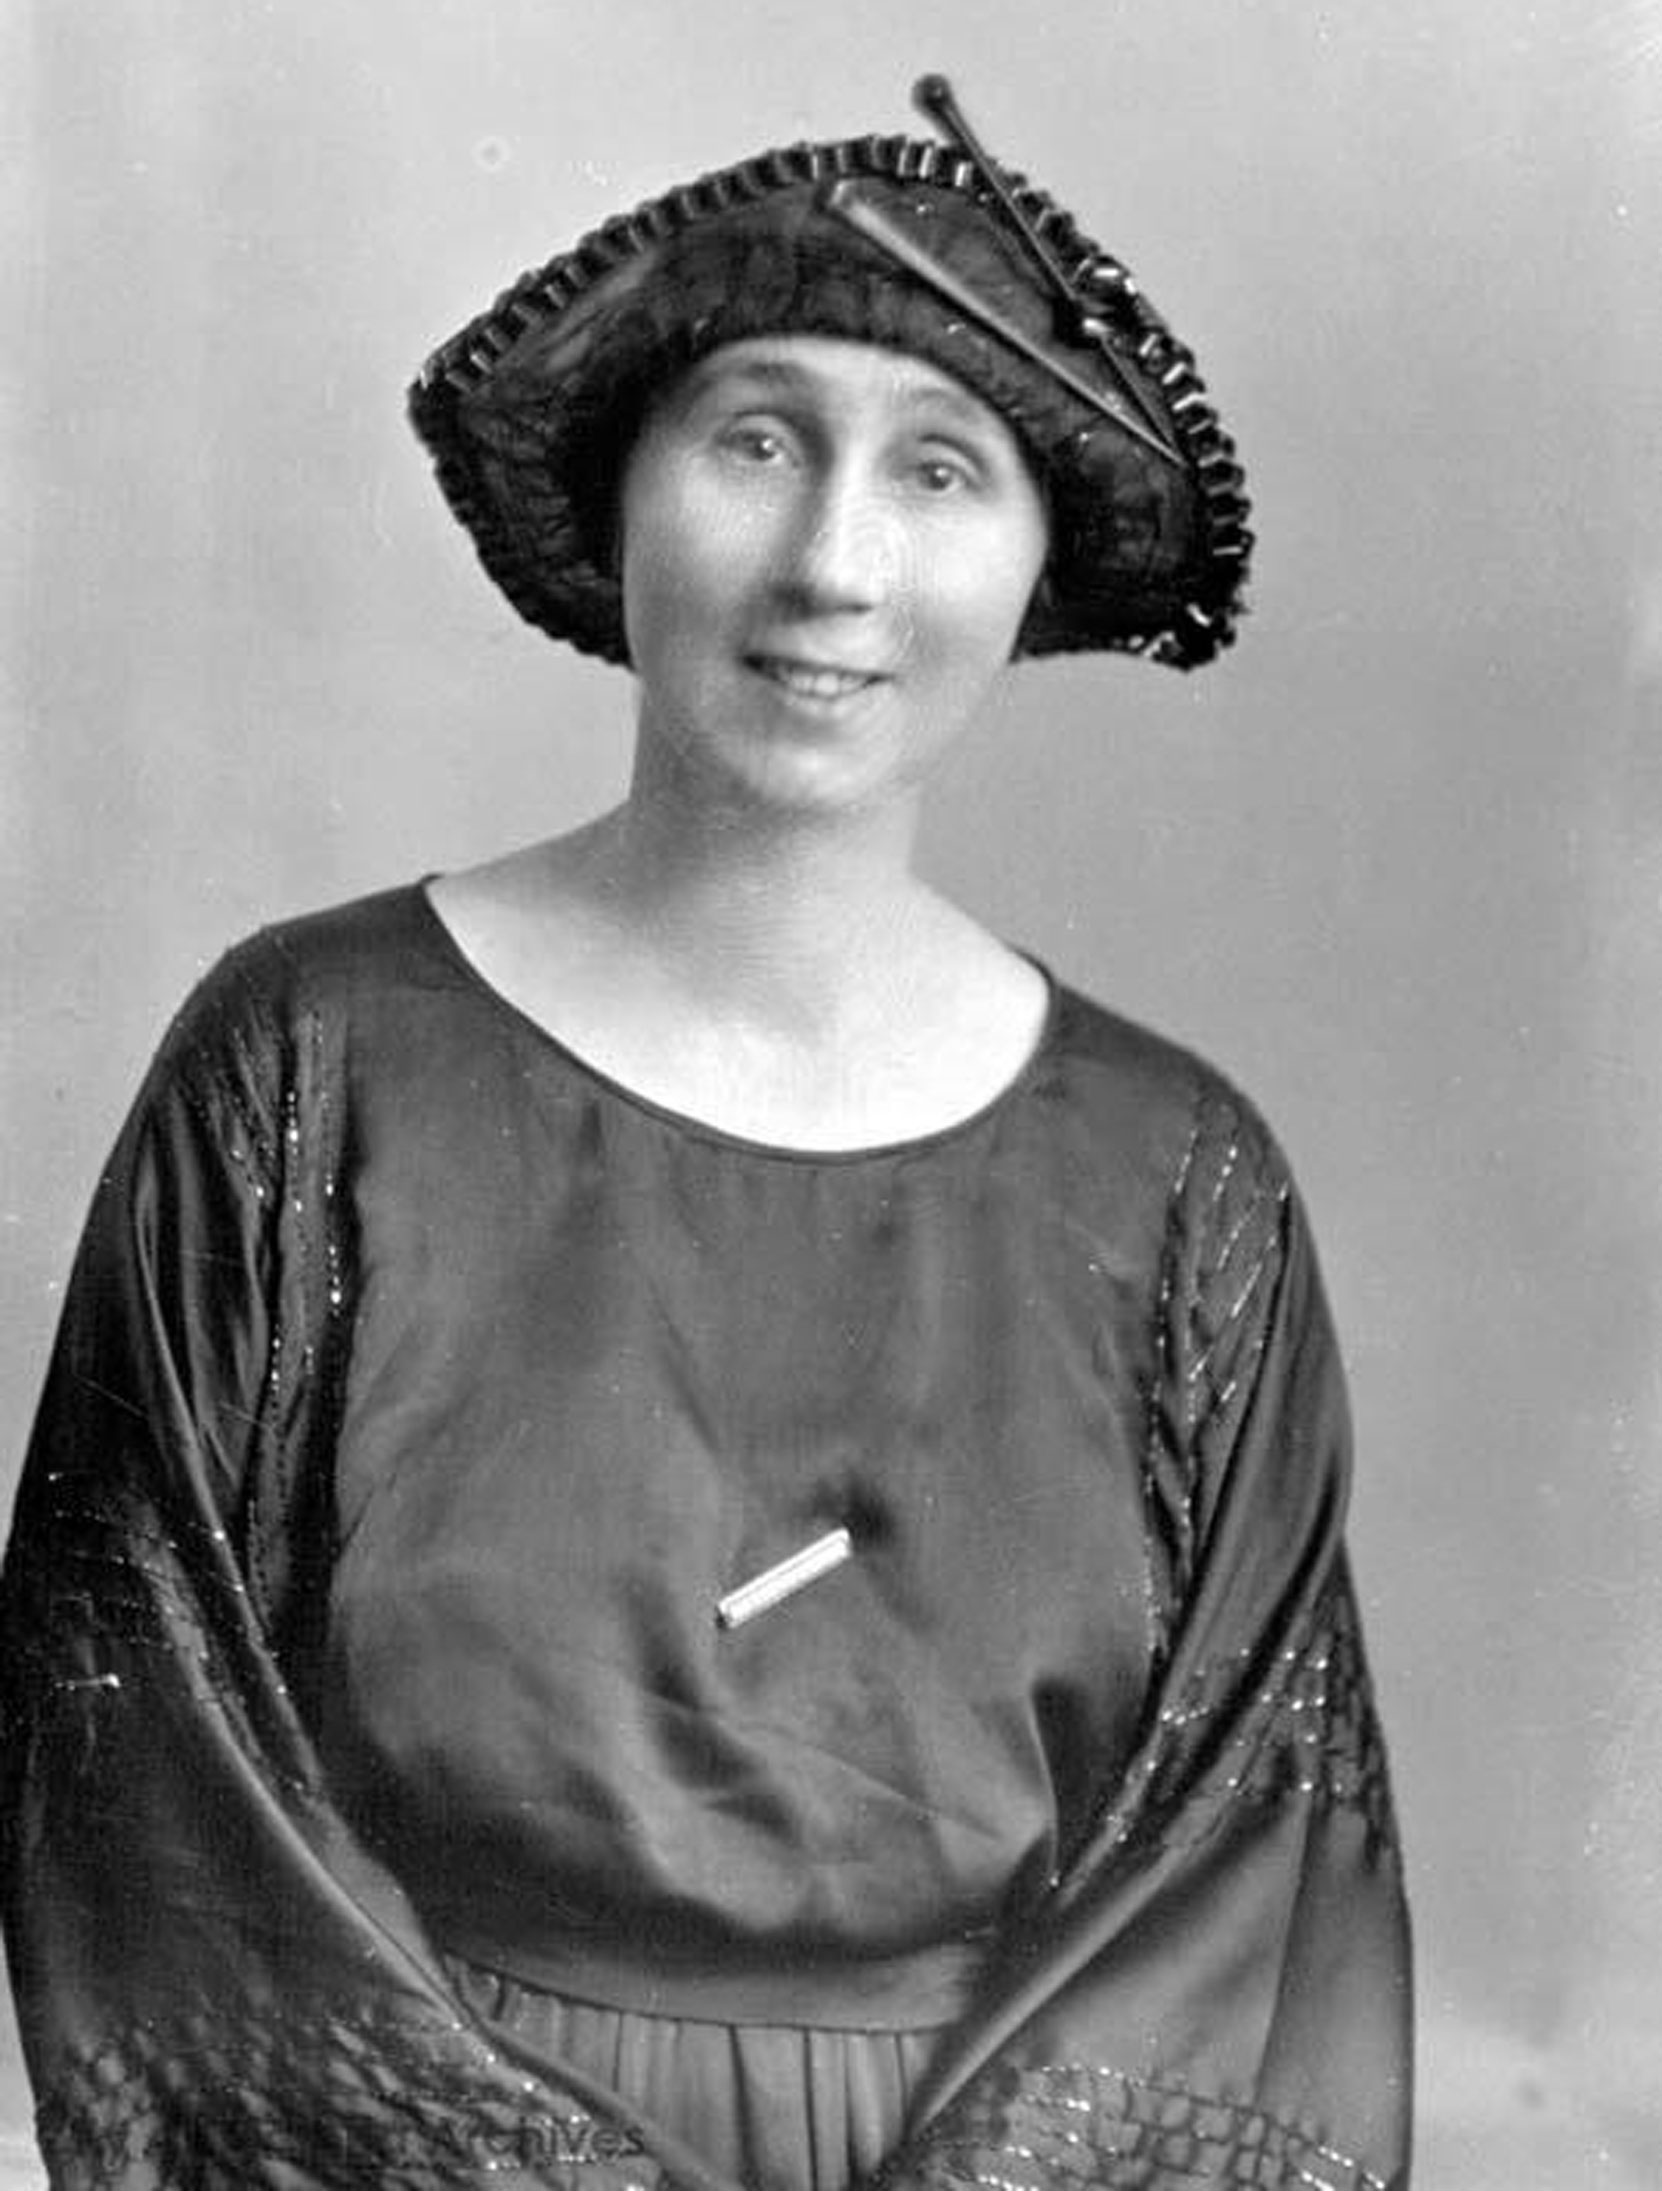 Mary Chatwin Butchart, the second daughter of Robert Butchart and Jennie Butchart. In 1910 she married William Todd. This photo was taken by Harry Upperton Knight in 1921 (City of Victoria Archives photo M0908)